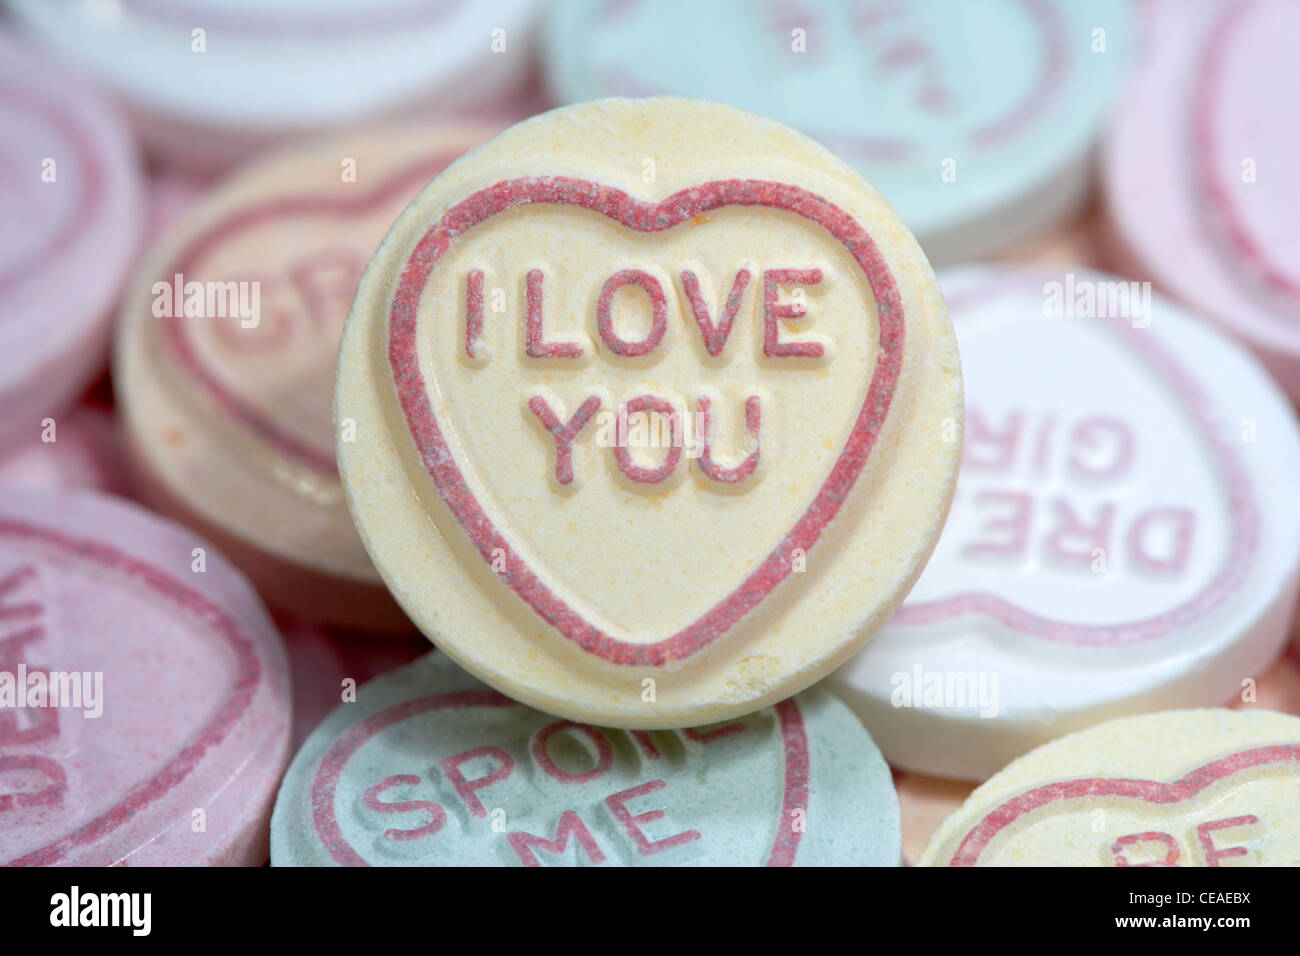 I Love You Amongst Love Heart Sweets Stock Photo Royalty